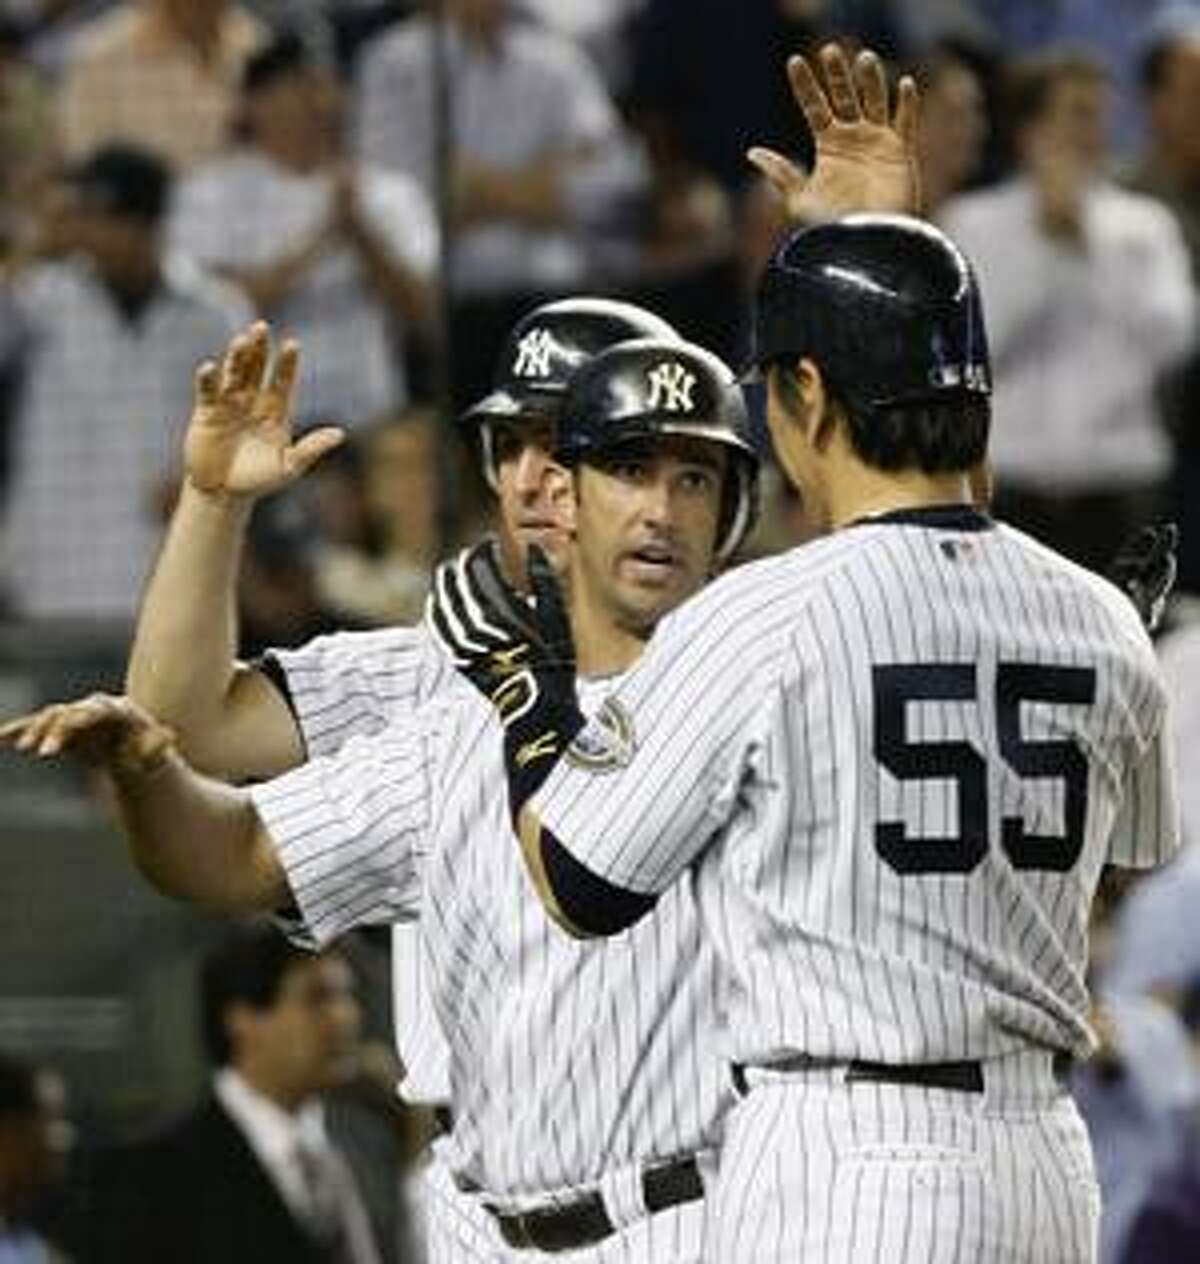 New York Yankees' Jorge Posada, center, greets Hideki Matsui (55) at the plate after Mark Teixeira, left, and Matsui scored on Posada's fourth-inning home run off Boston Red Sox pitcher Billy Traber at Yankee Stadium in New York, Thursday.